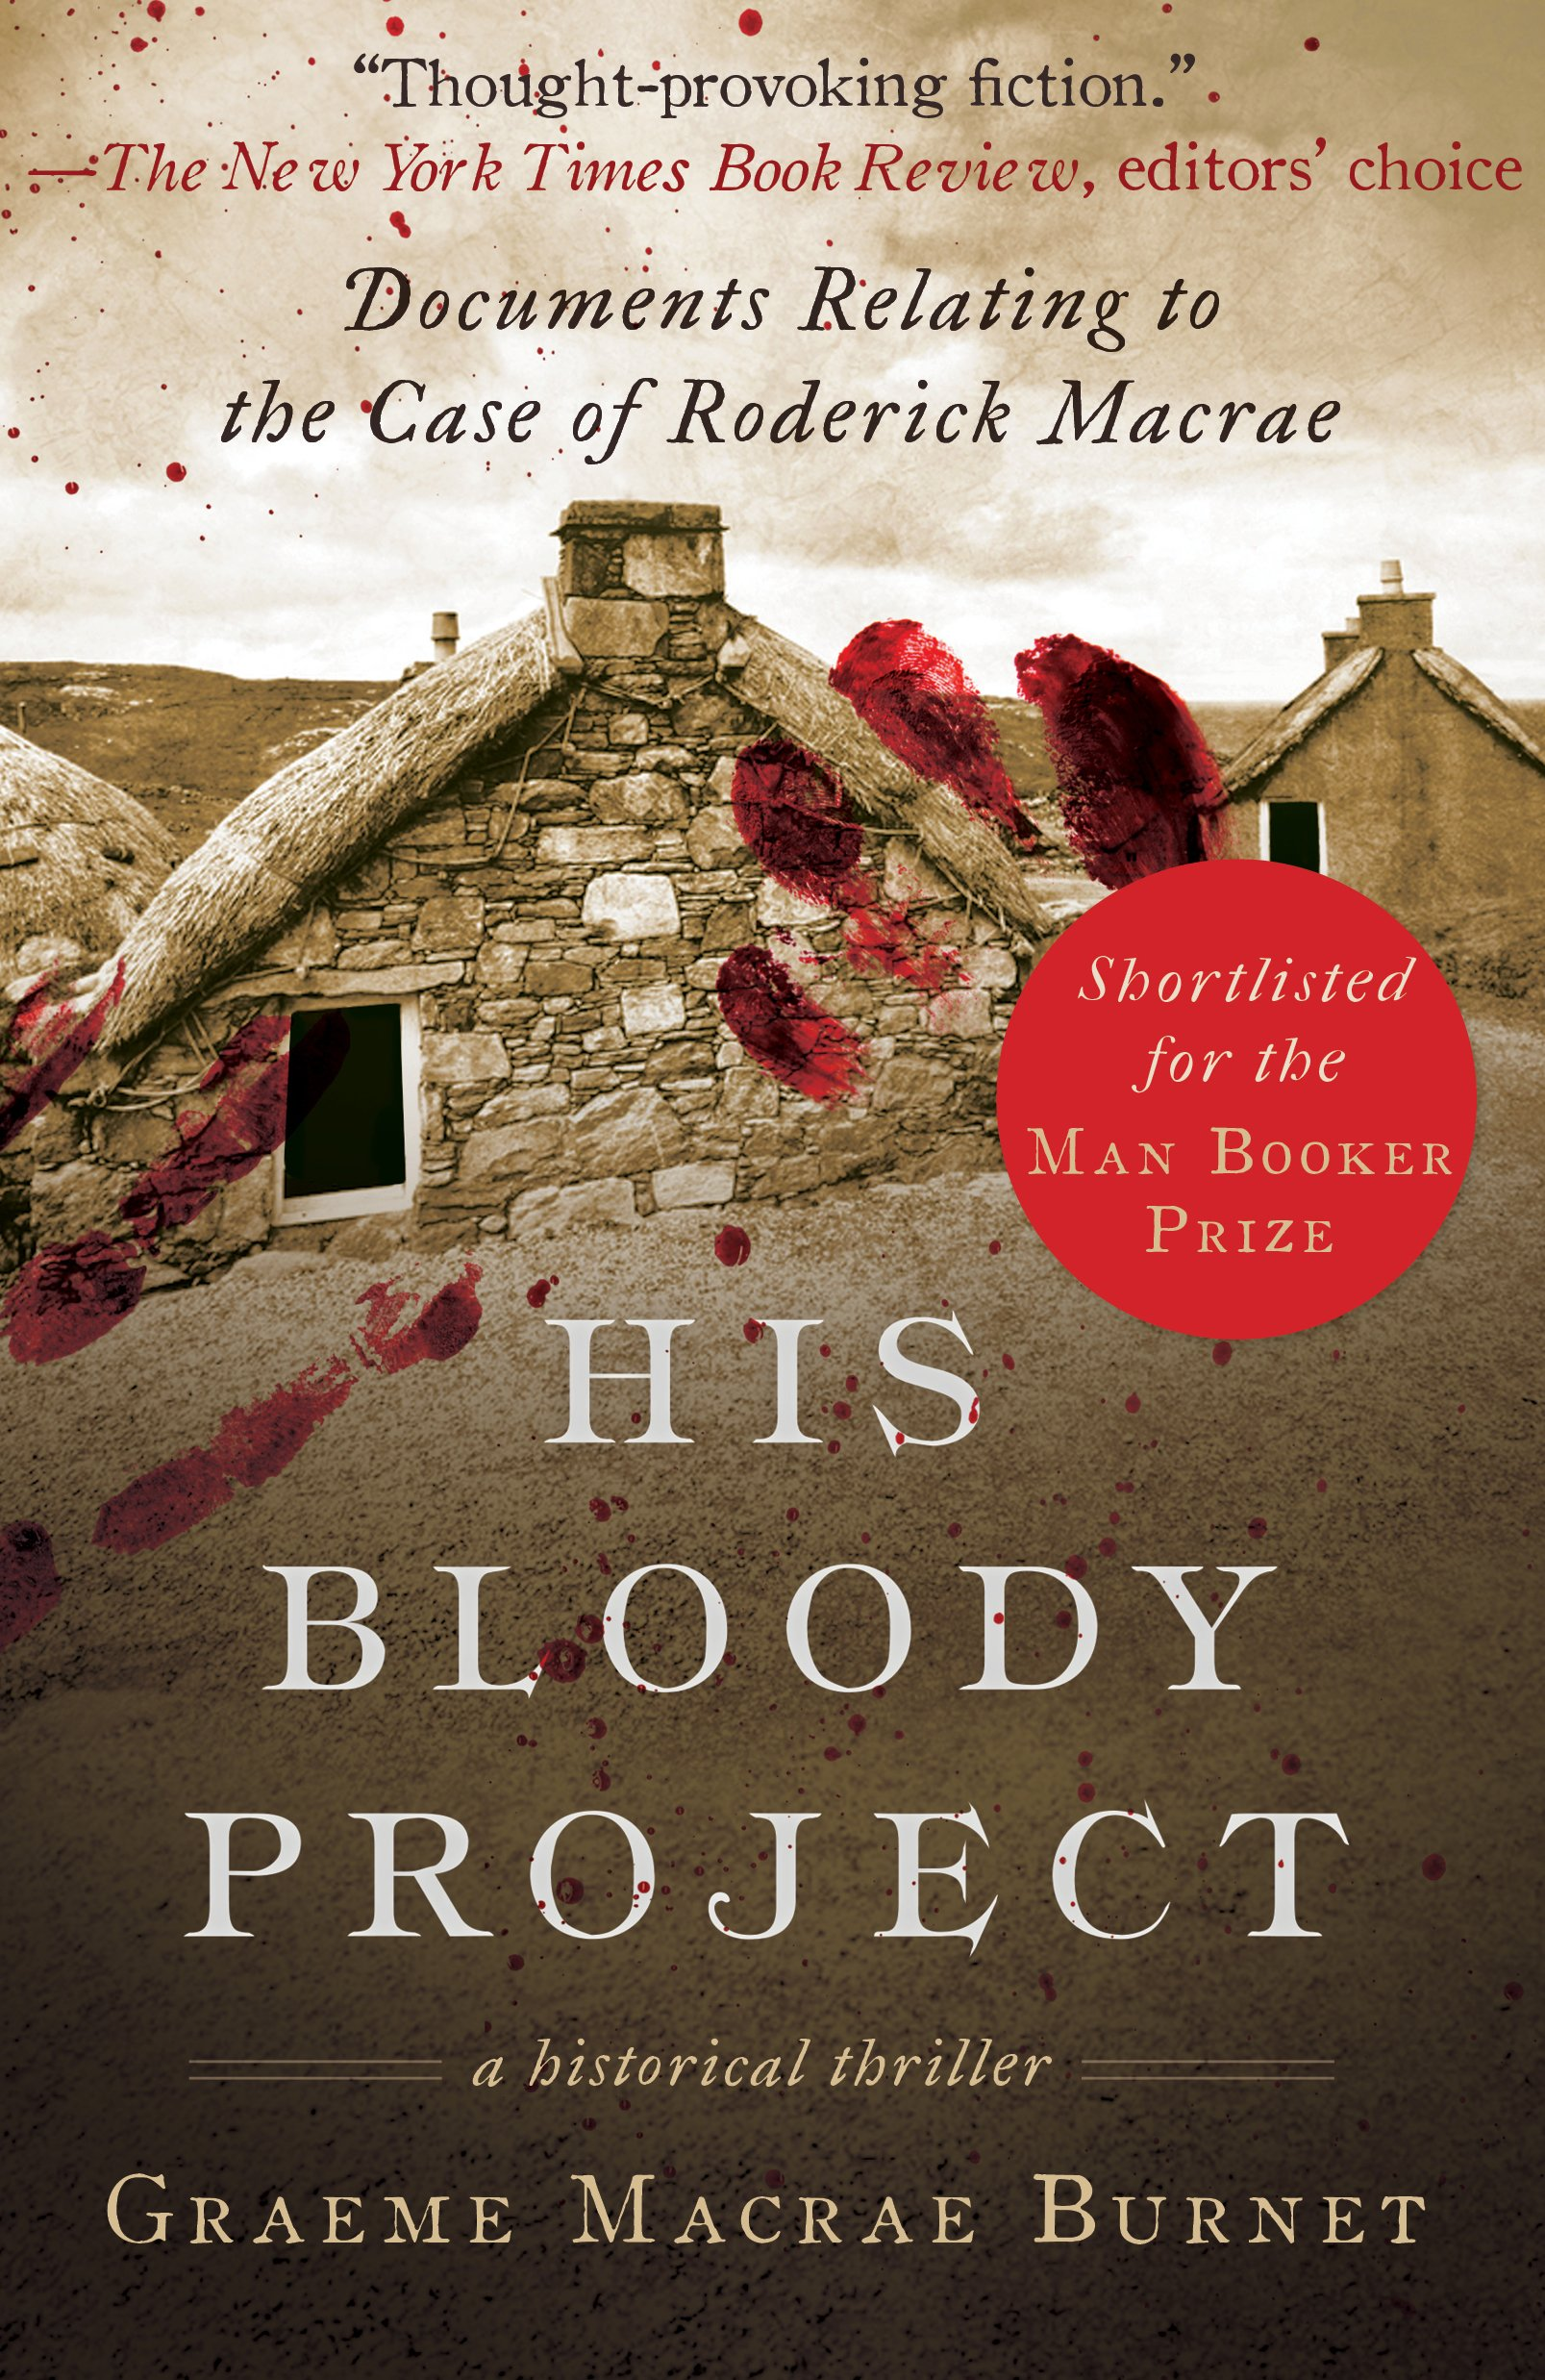 Download ebook His Bloody Project